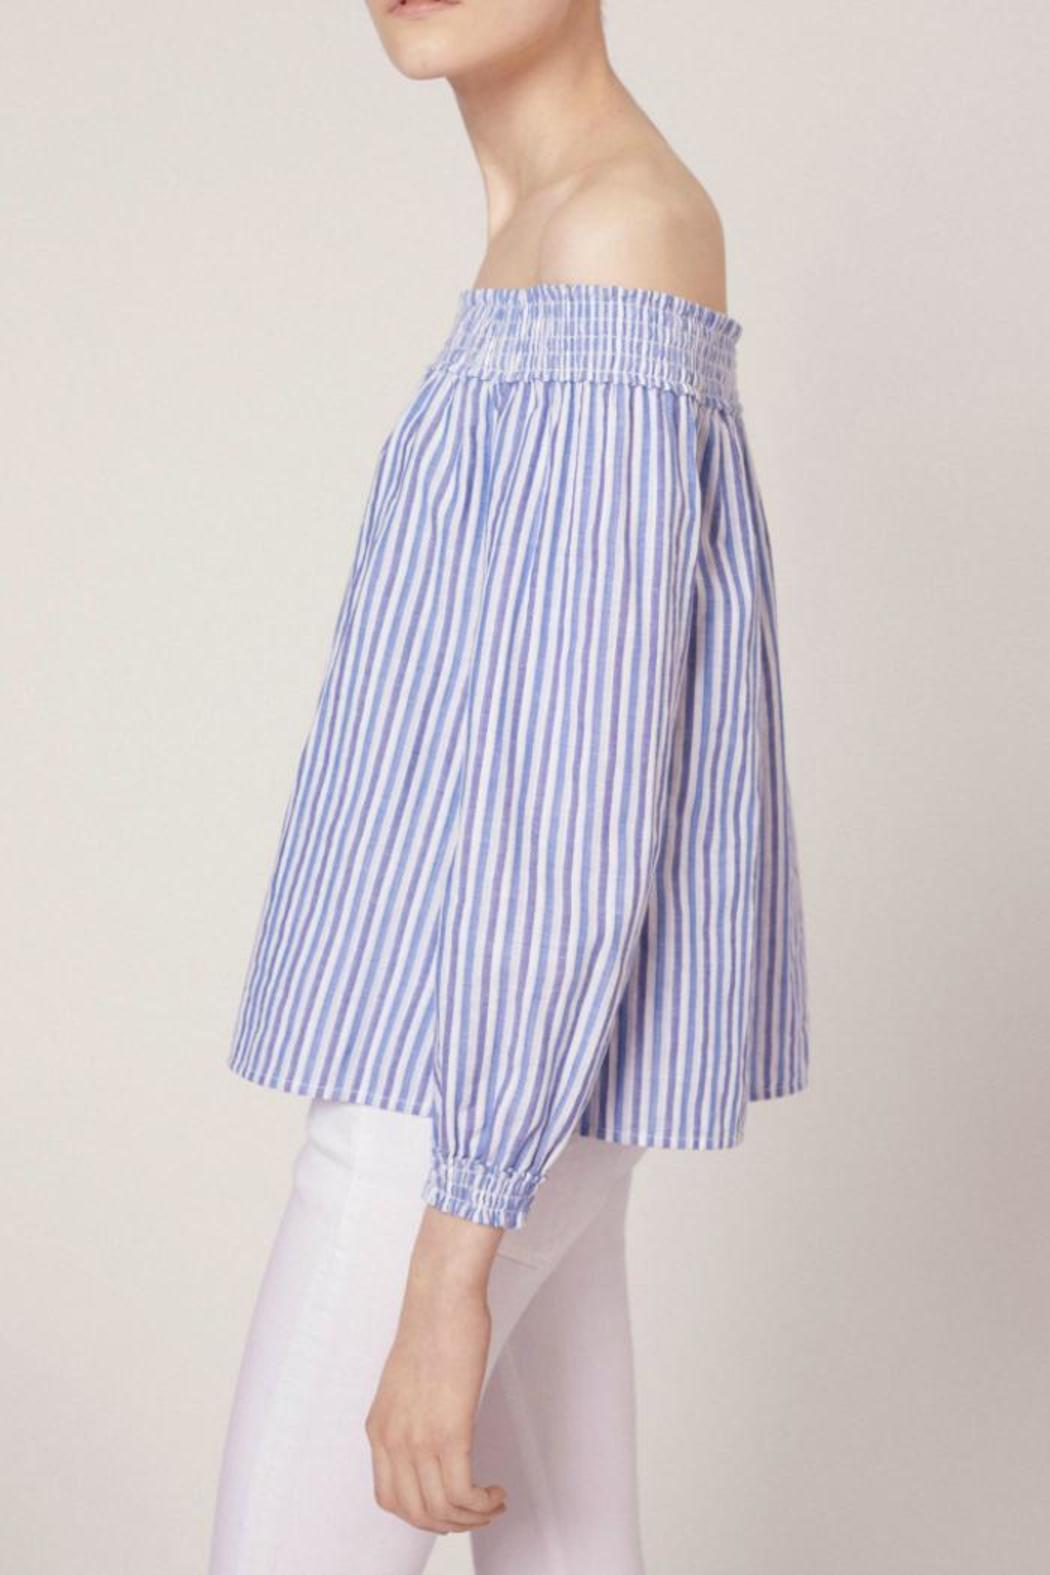 Rag & Bone Striped Drew Top - Side Cropped Image